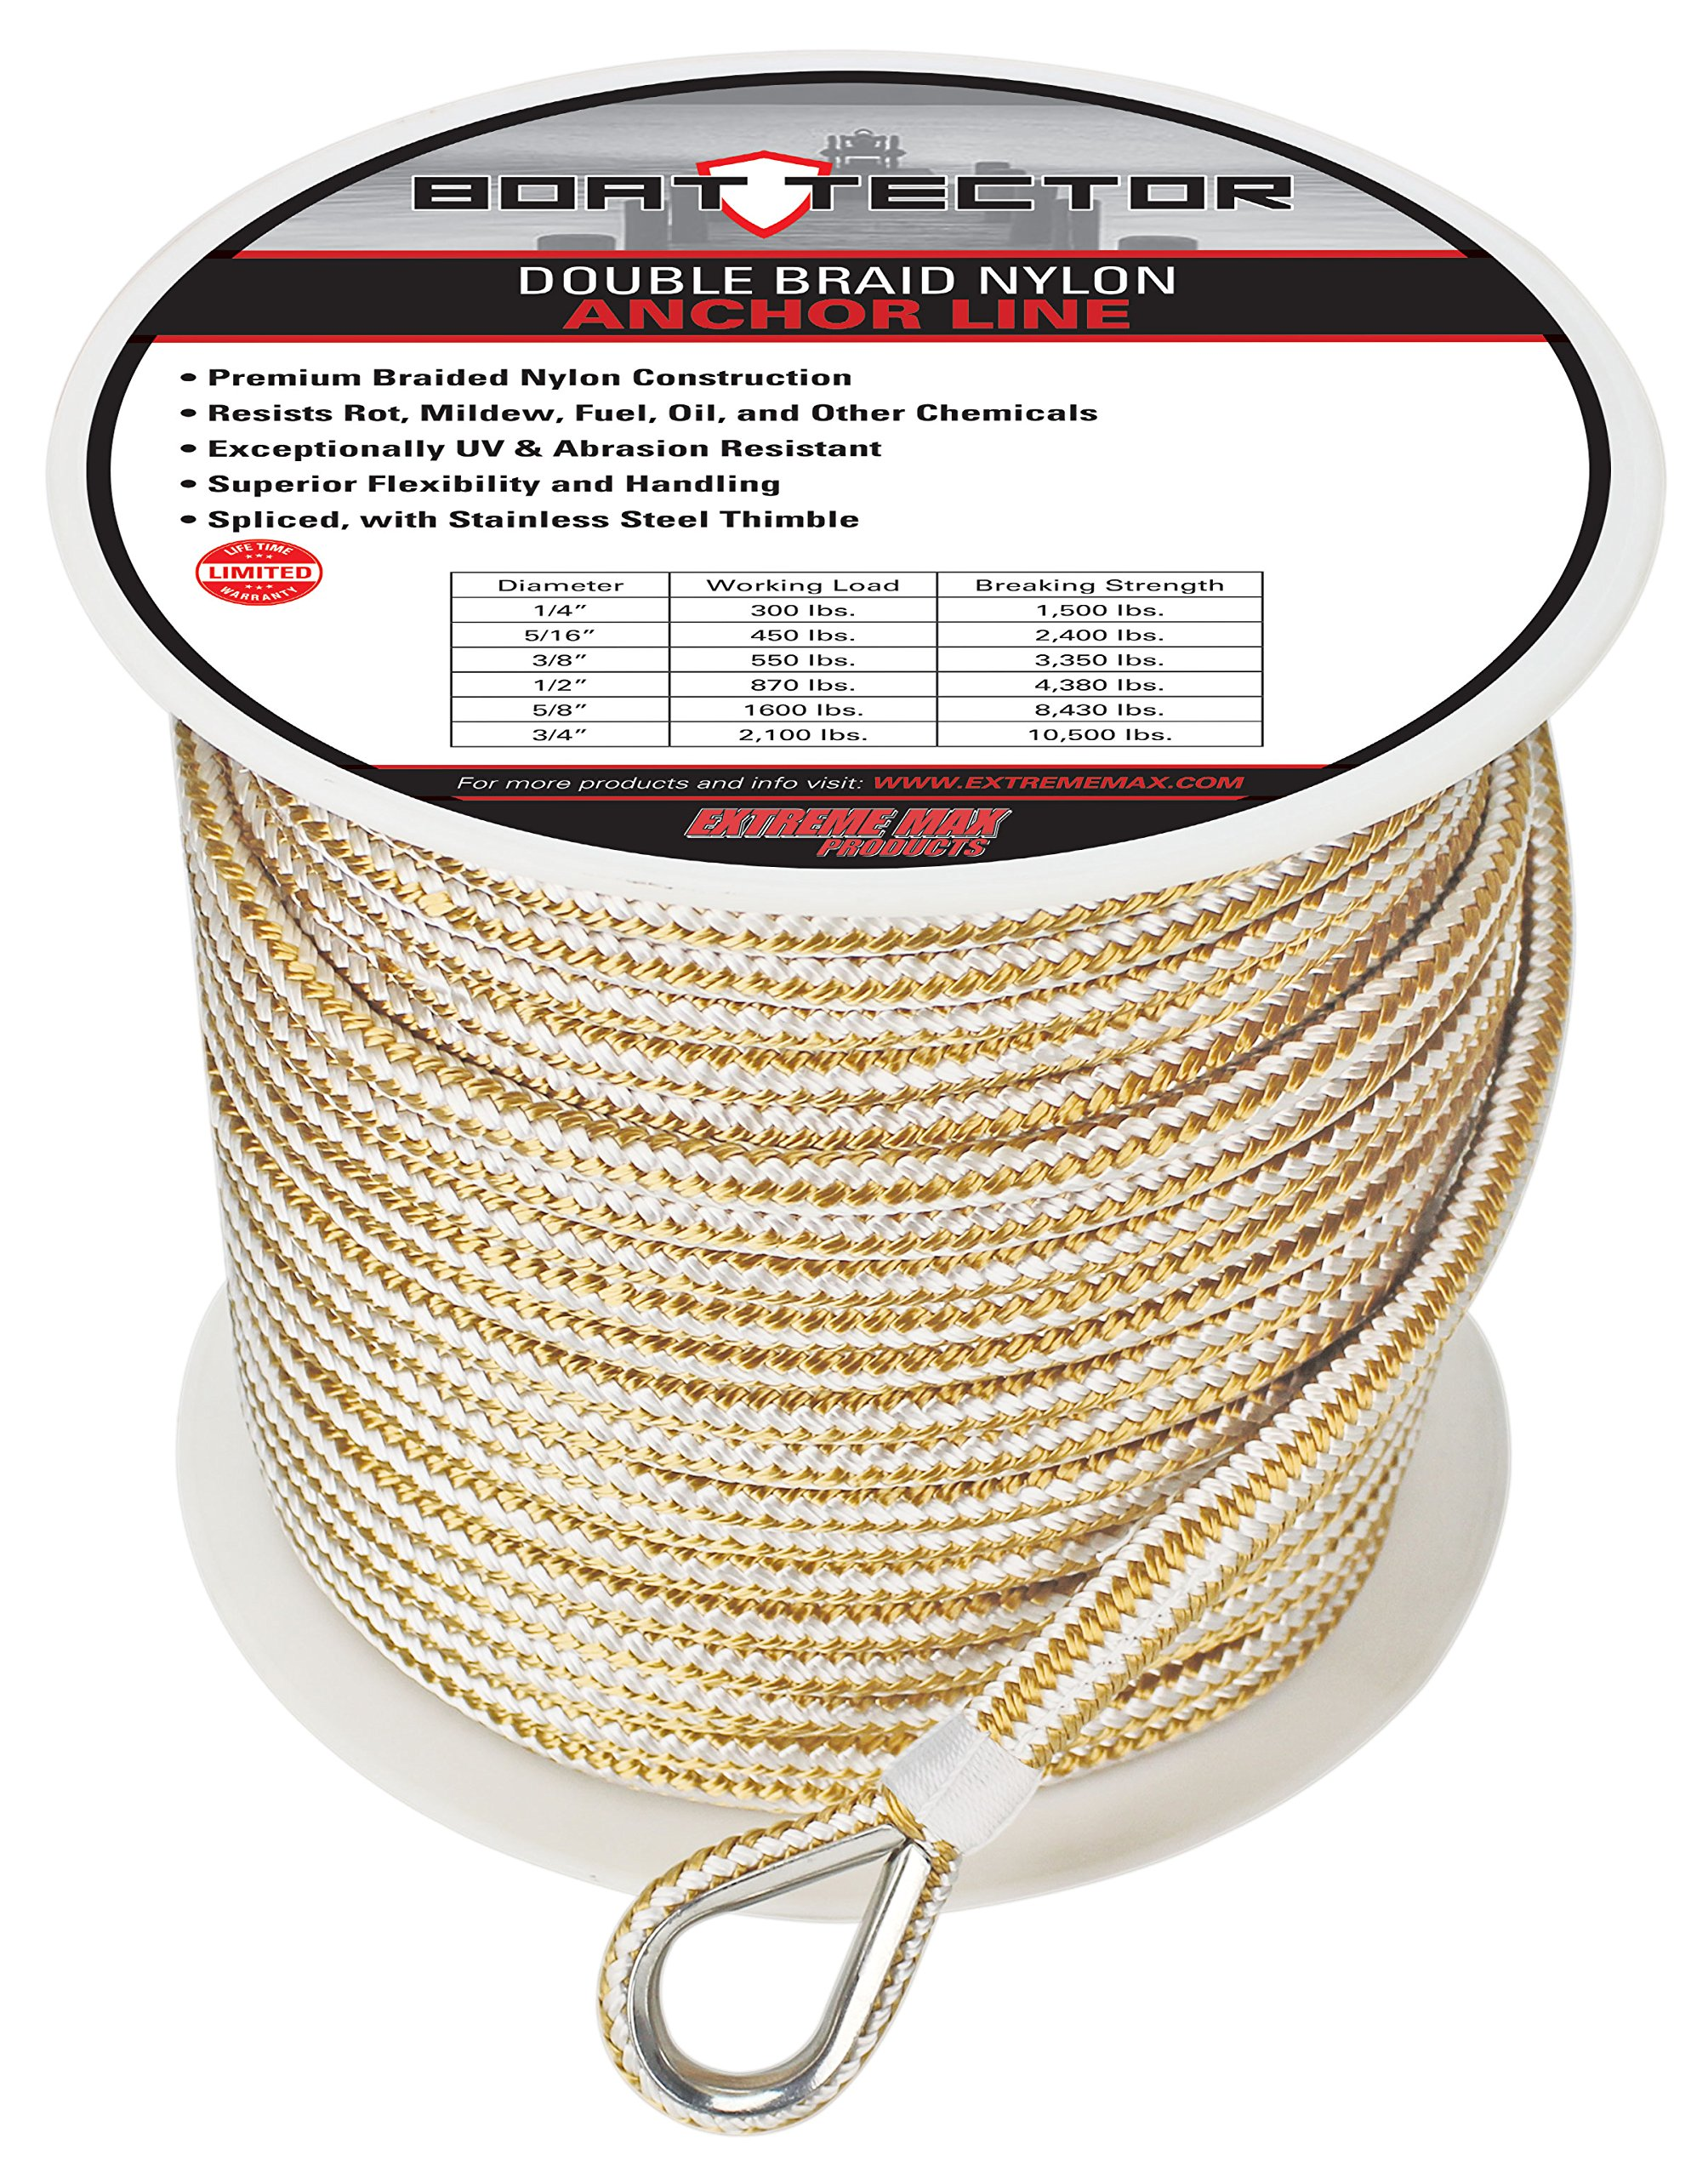 Extreme Max 3006.2347 BoatTector Double Braid Nylon Anchor Line with Thimble - 3/8'' x 600', White & Gold